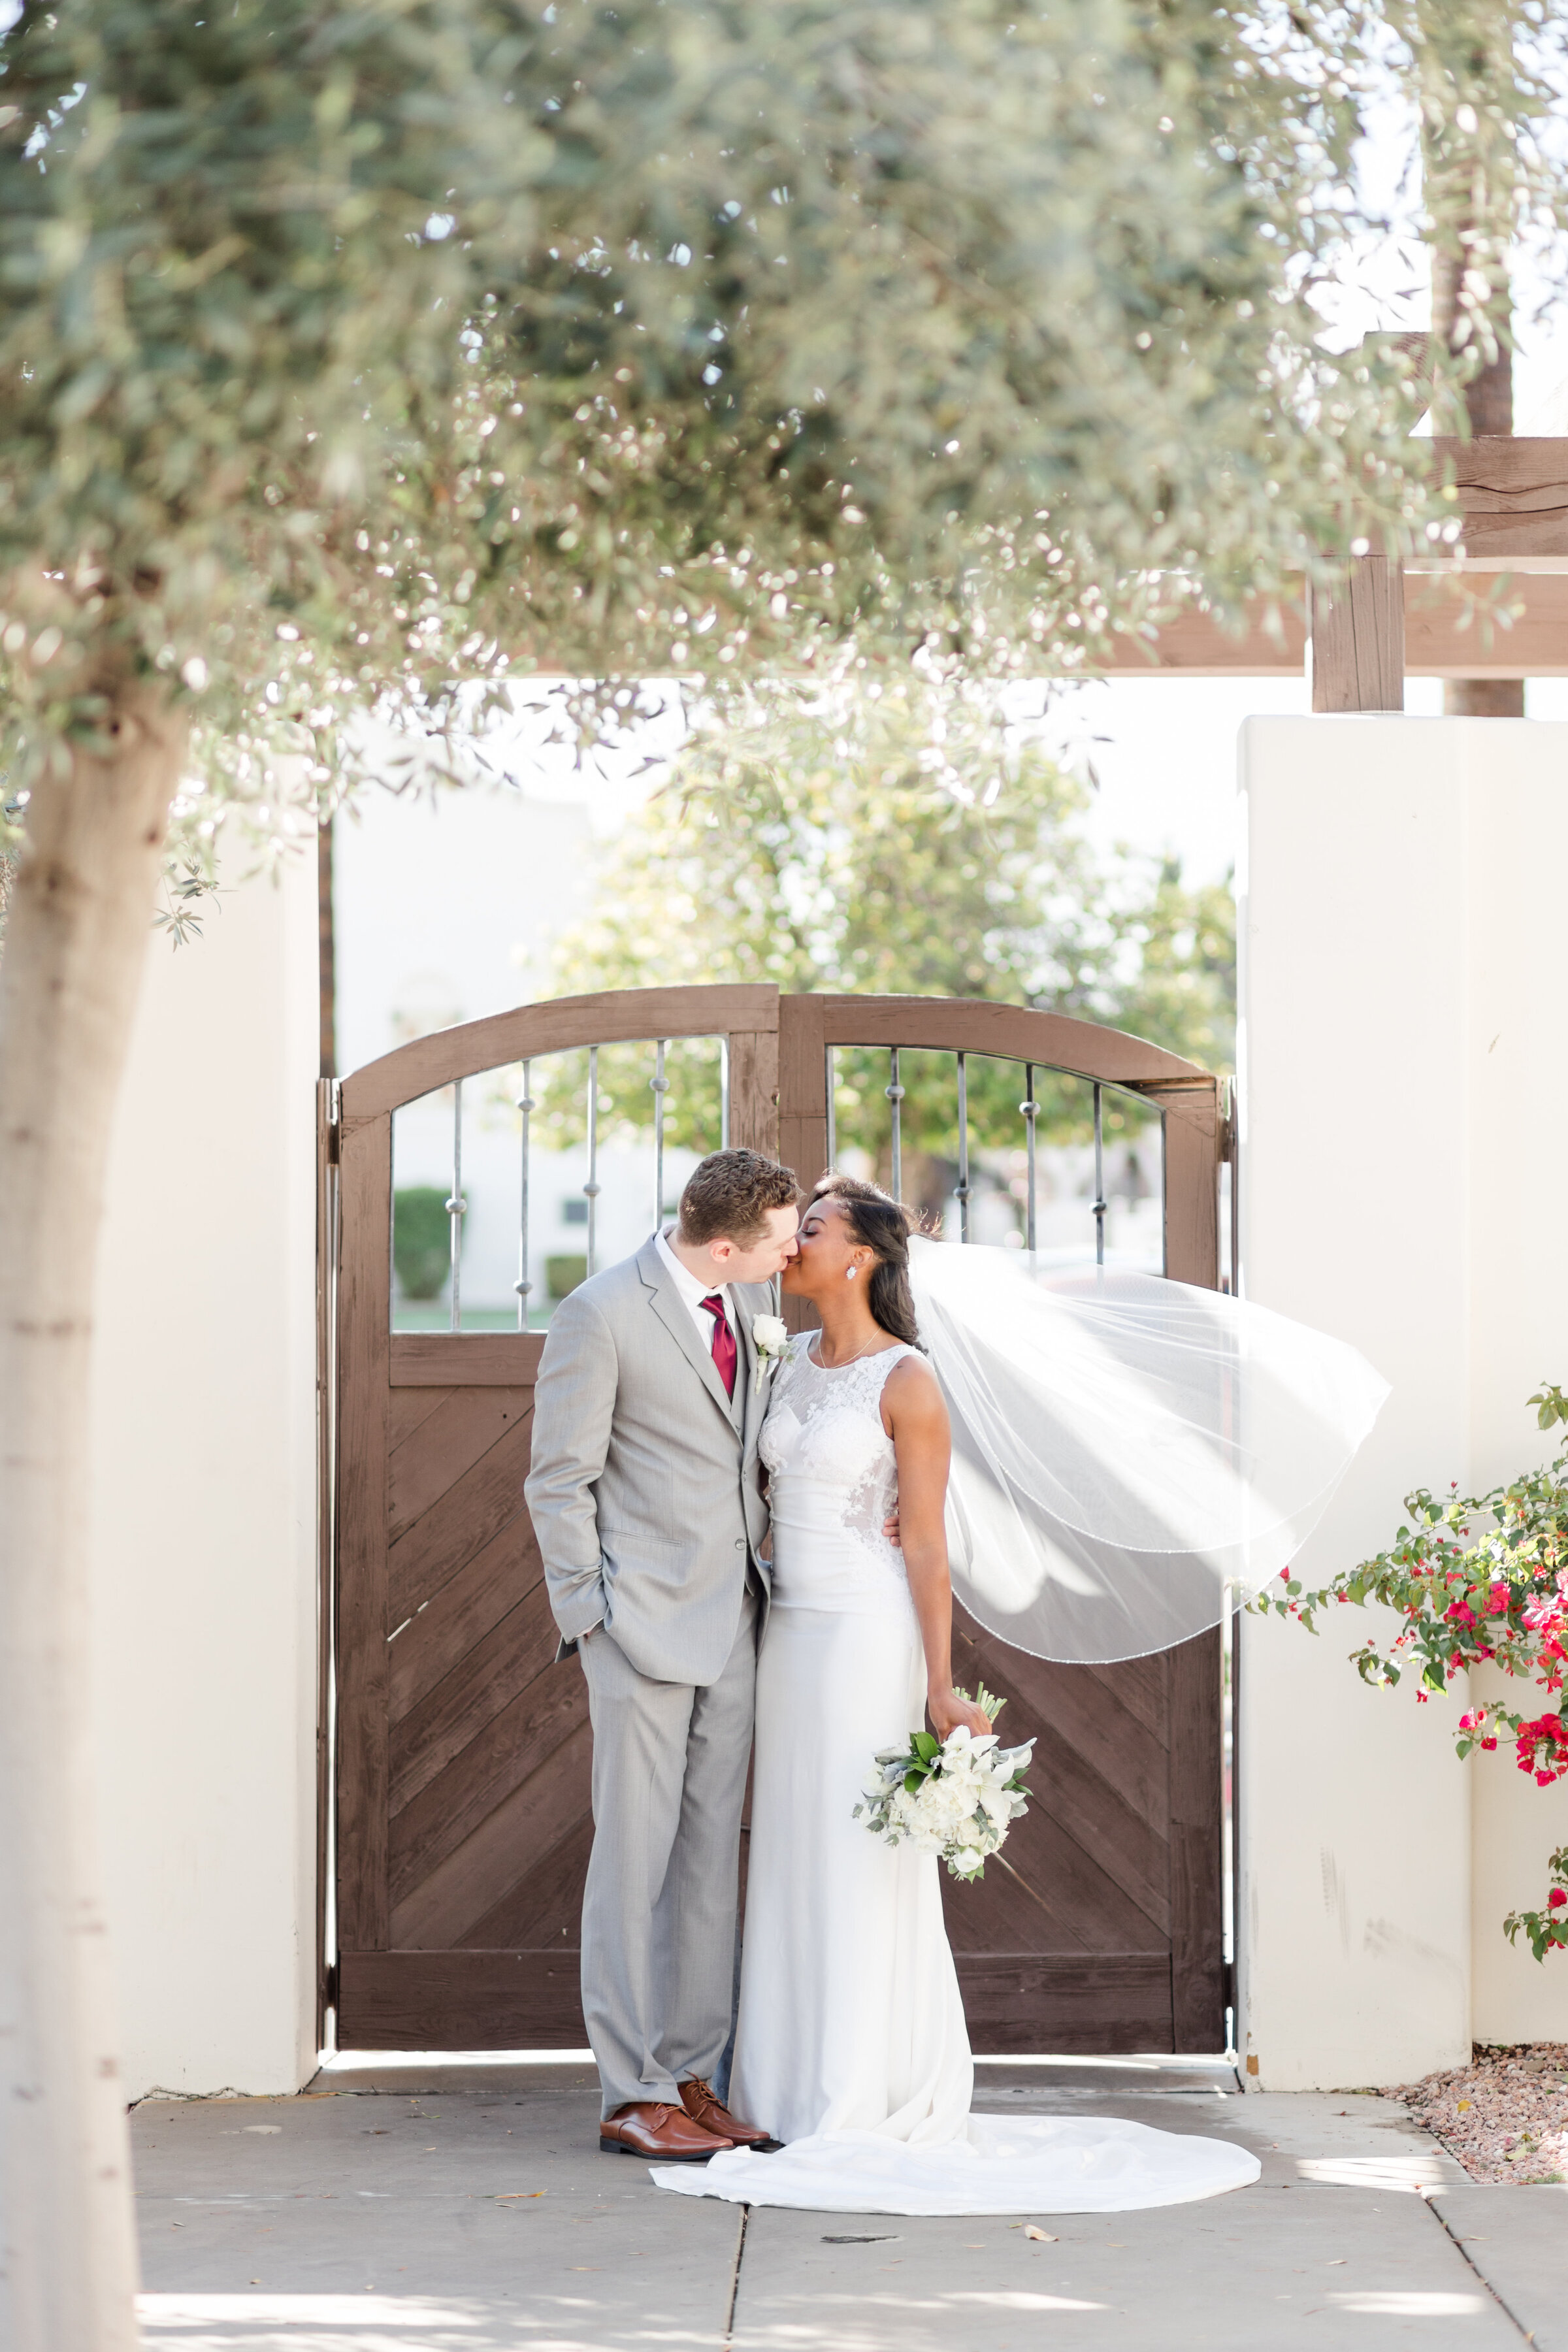 Bride and groom pose at their wedding venue in Peoria, Arizona